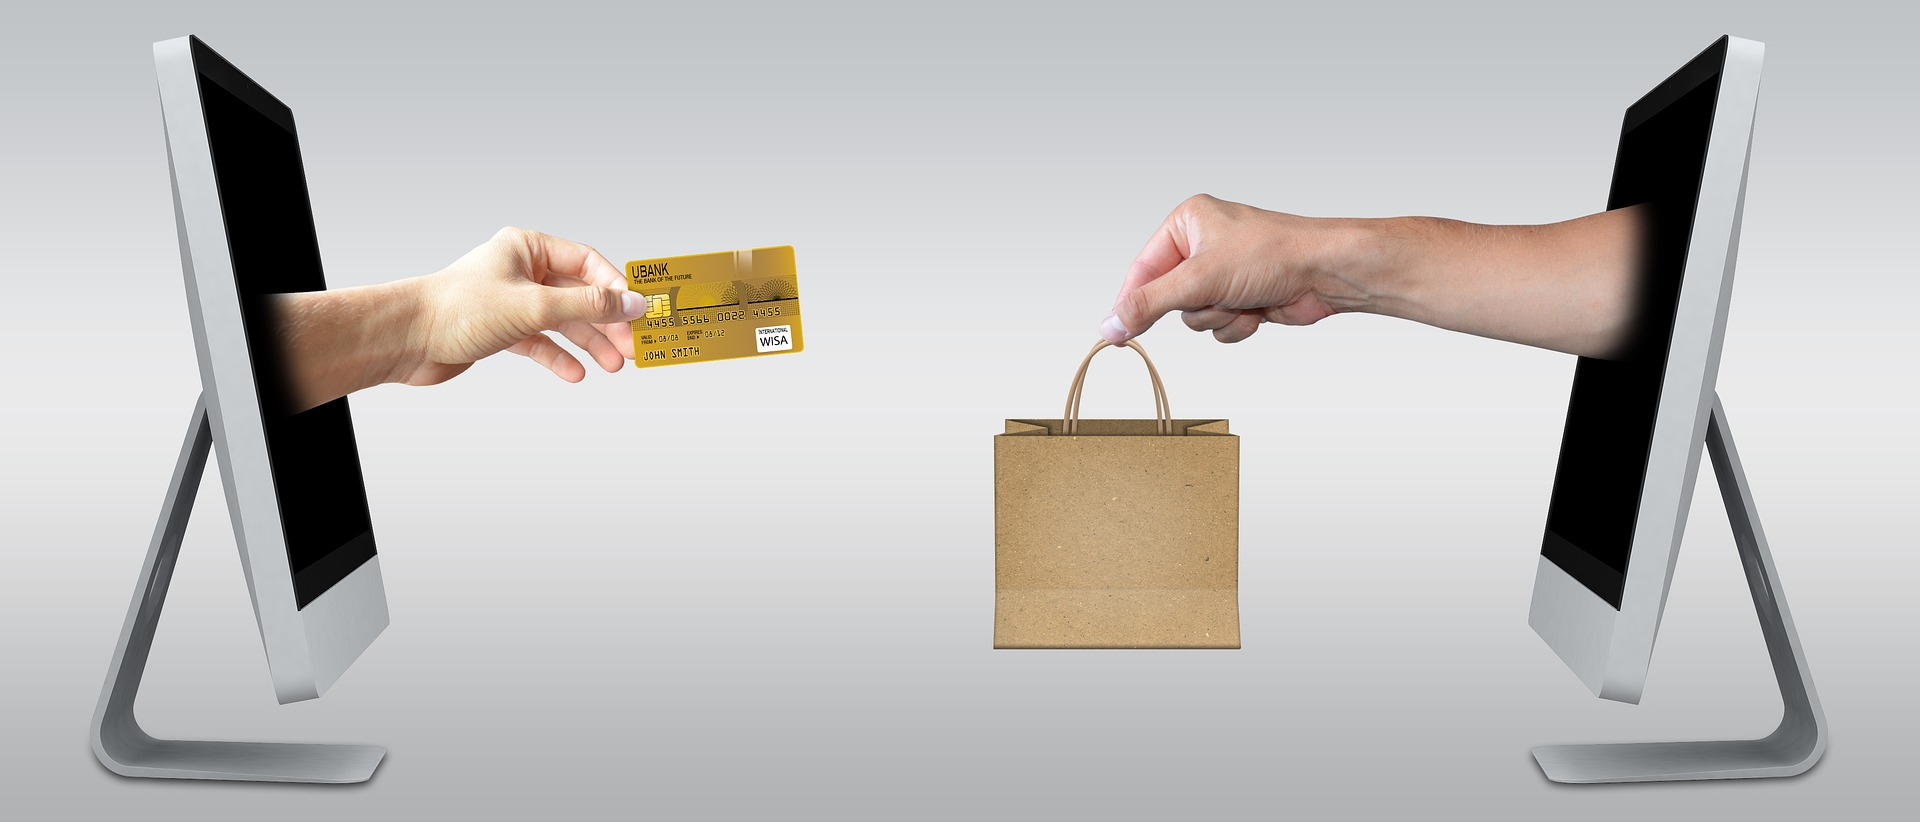 E-commerce shopping cart installation and setup for you